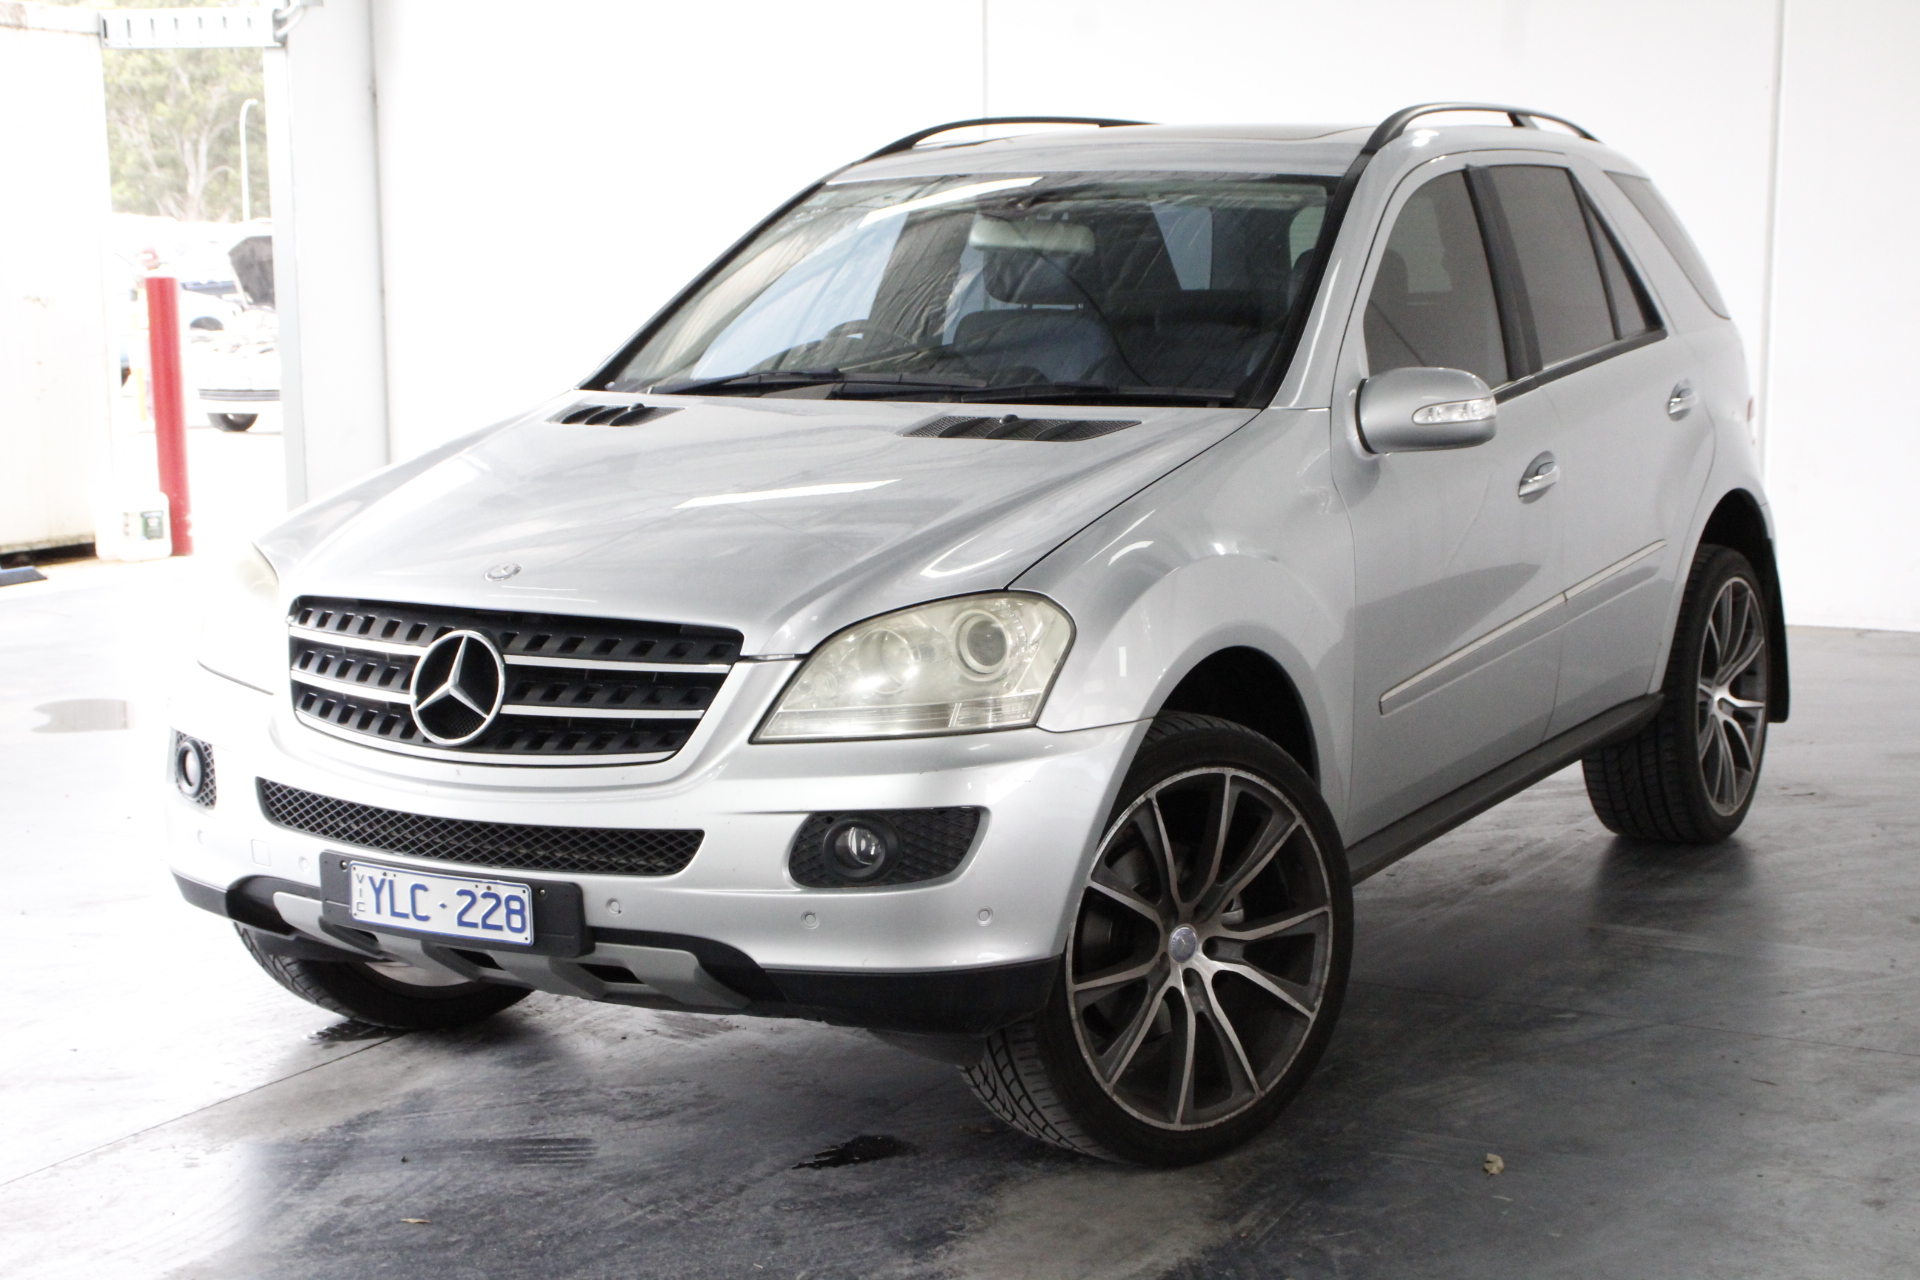 2006 Mercedes Benz ML 350 (4x4) W164 Automatic Wagon